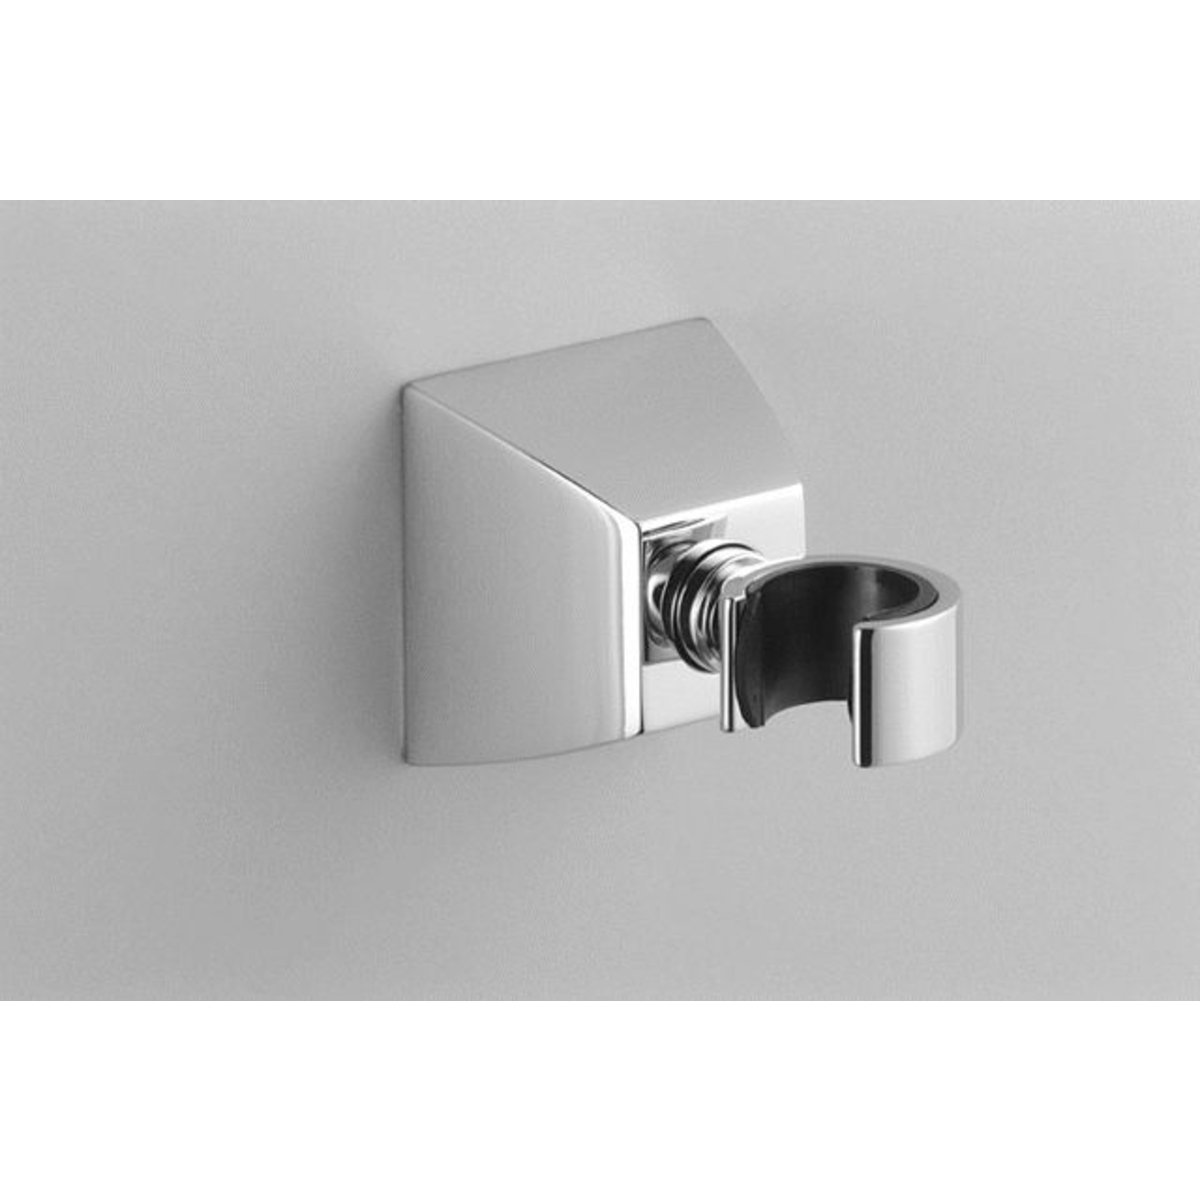 Villeroy boch square support mural pour douchette chrome for Support mural pour photos